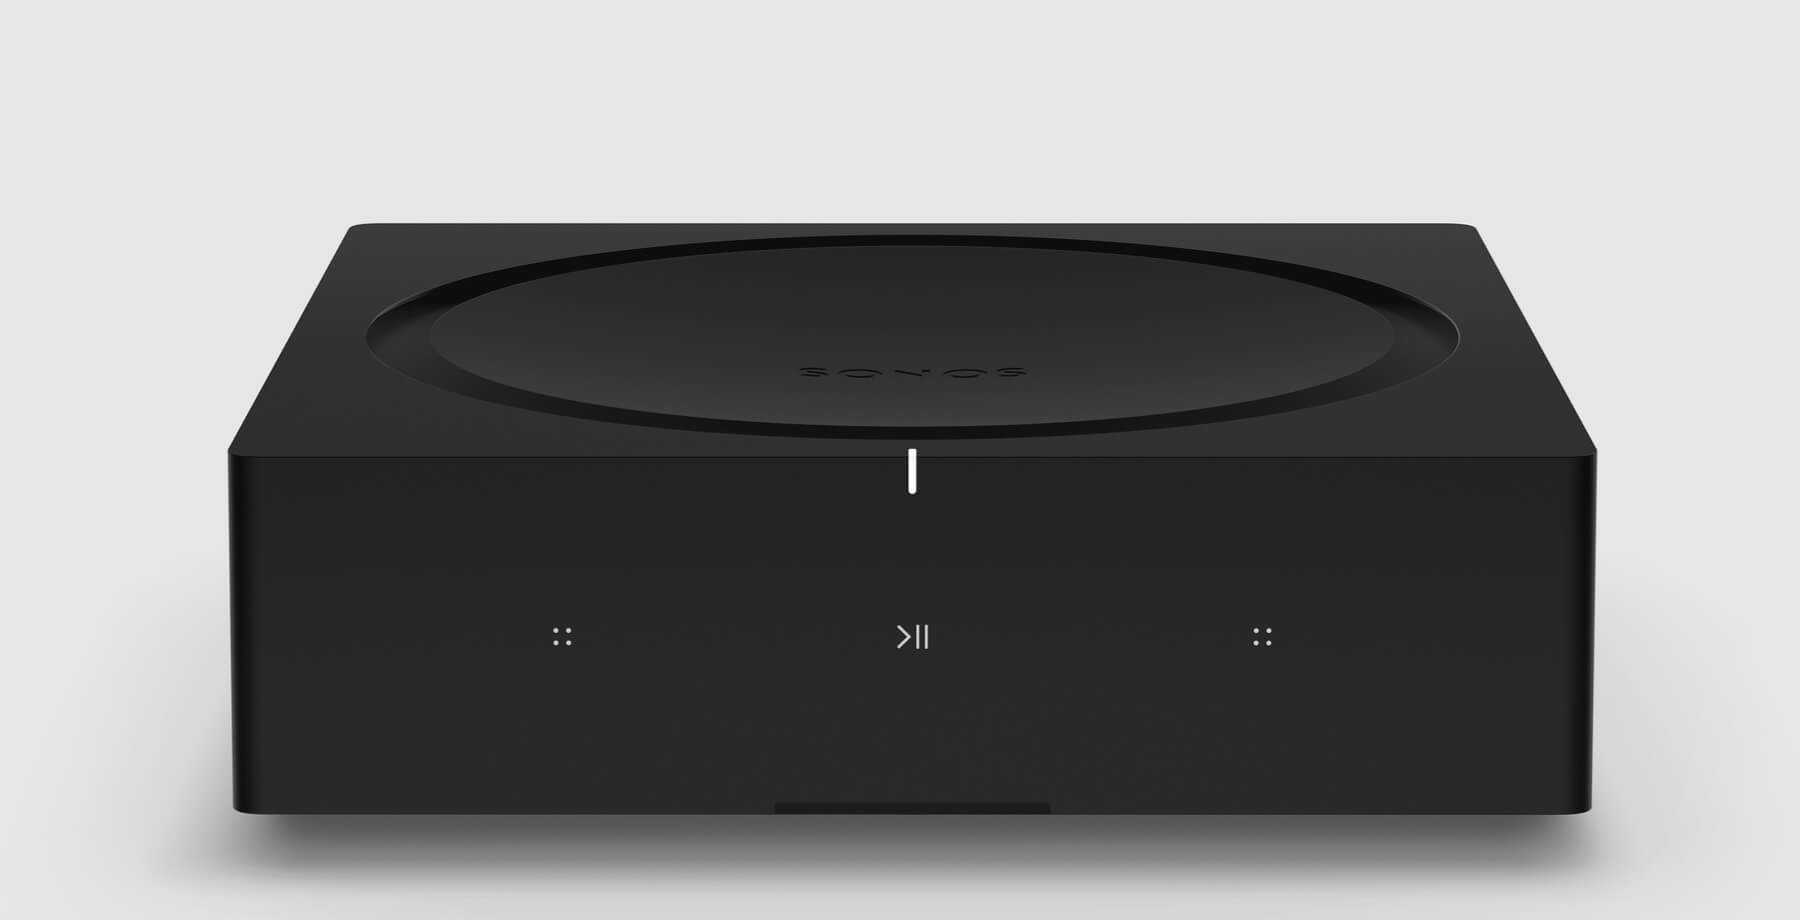 More Power, More Possibilities with Sonos Amp